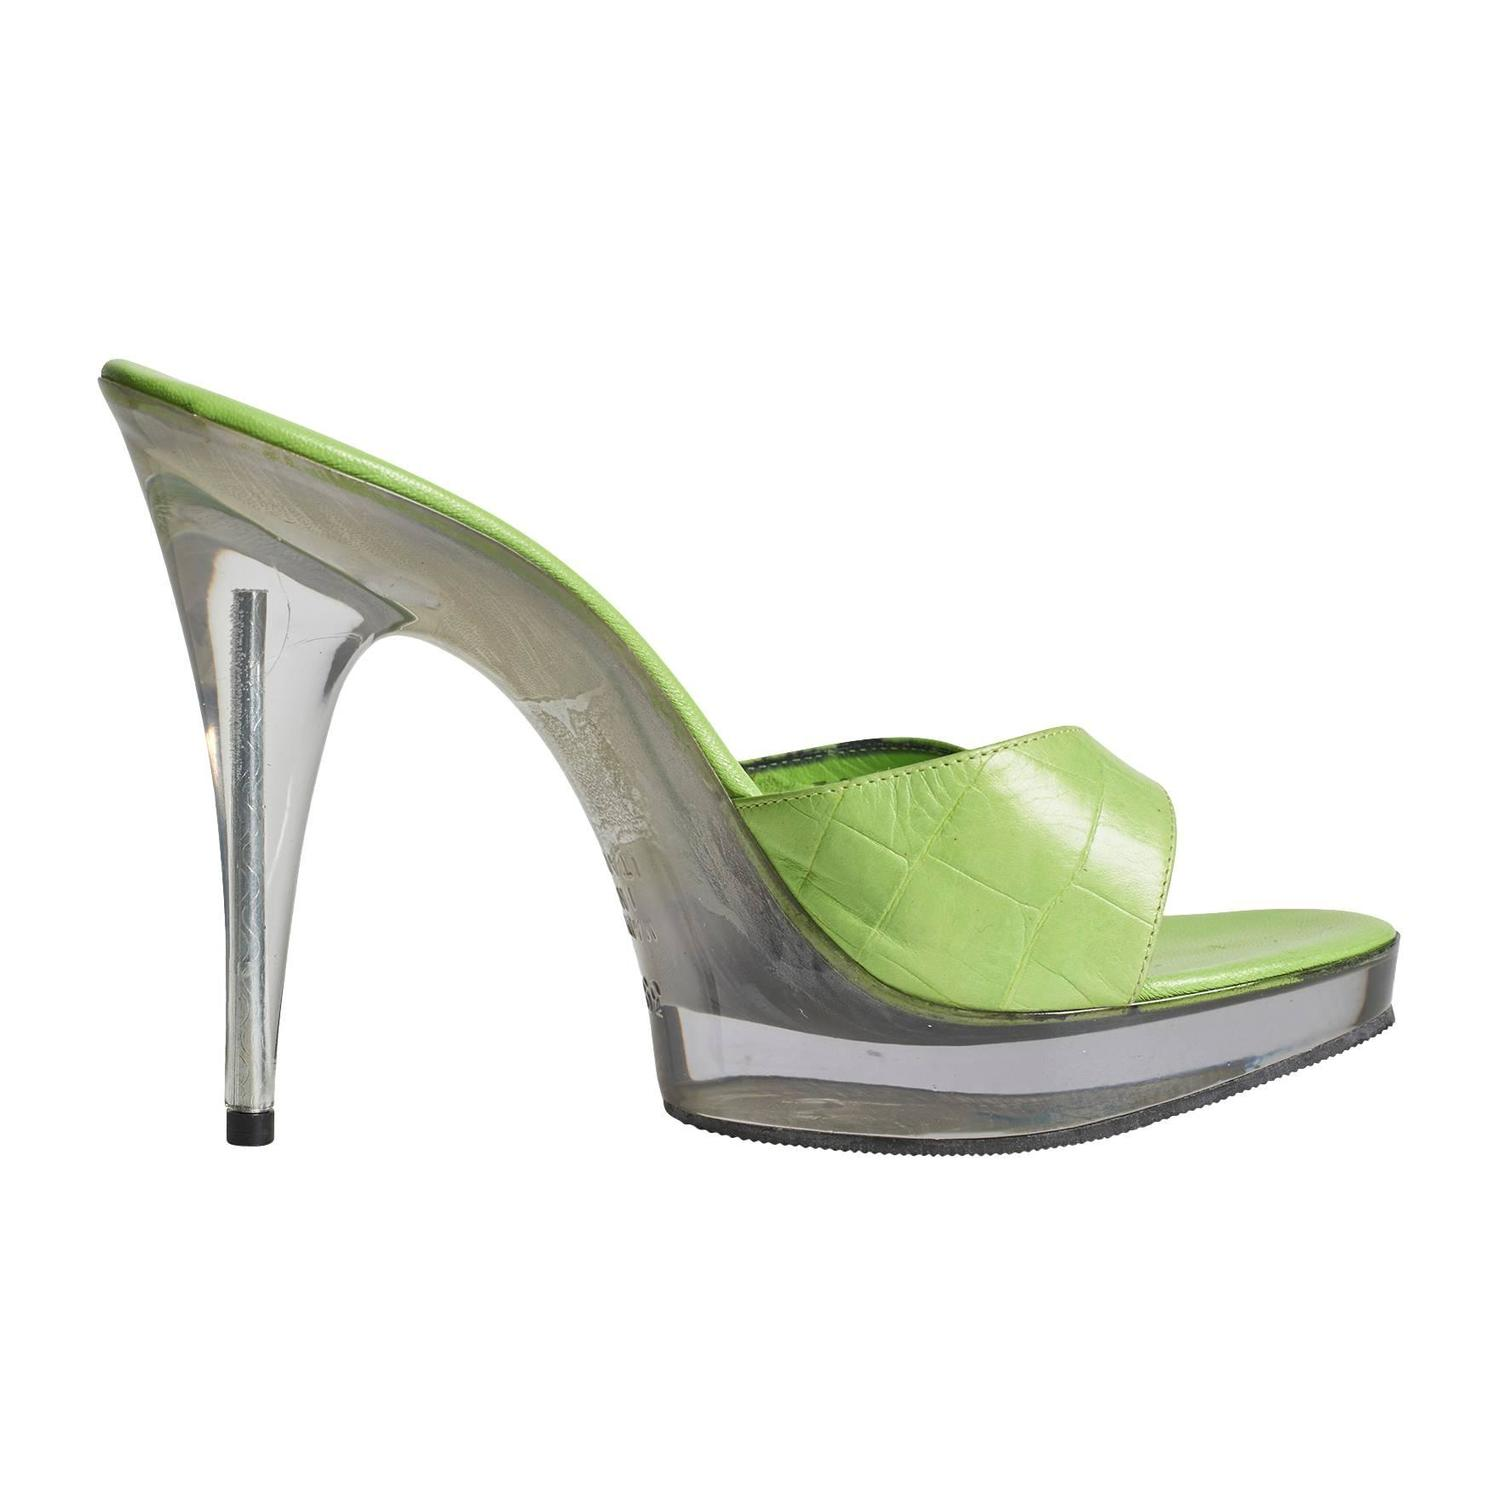 lime green heel with plastic platform and heel at